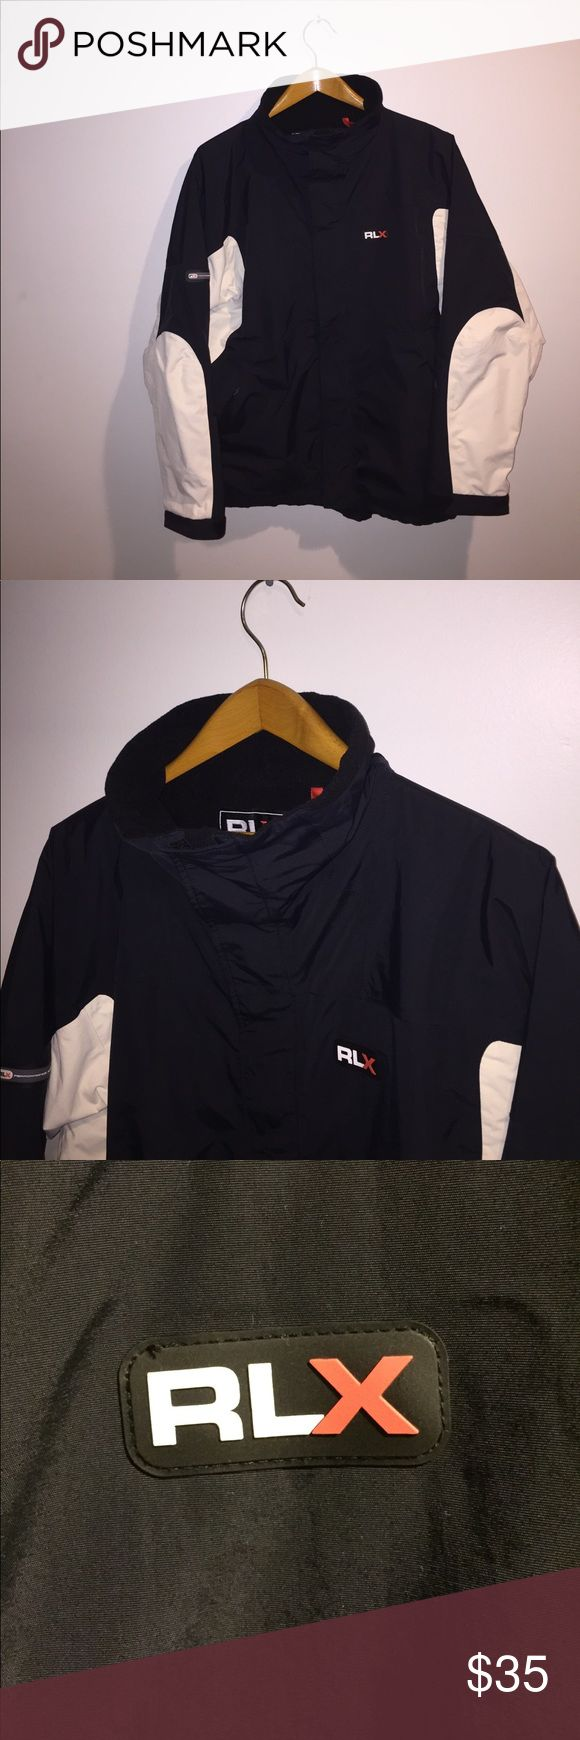 RLX Polo Sport Jacket A RLX Polo Sport Jacket in a navy blue, white and black color way. This is in a medium size and excellent condition. RLX Ralph Lauren Jackets & Coats Performance Jackets